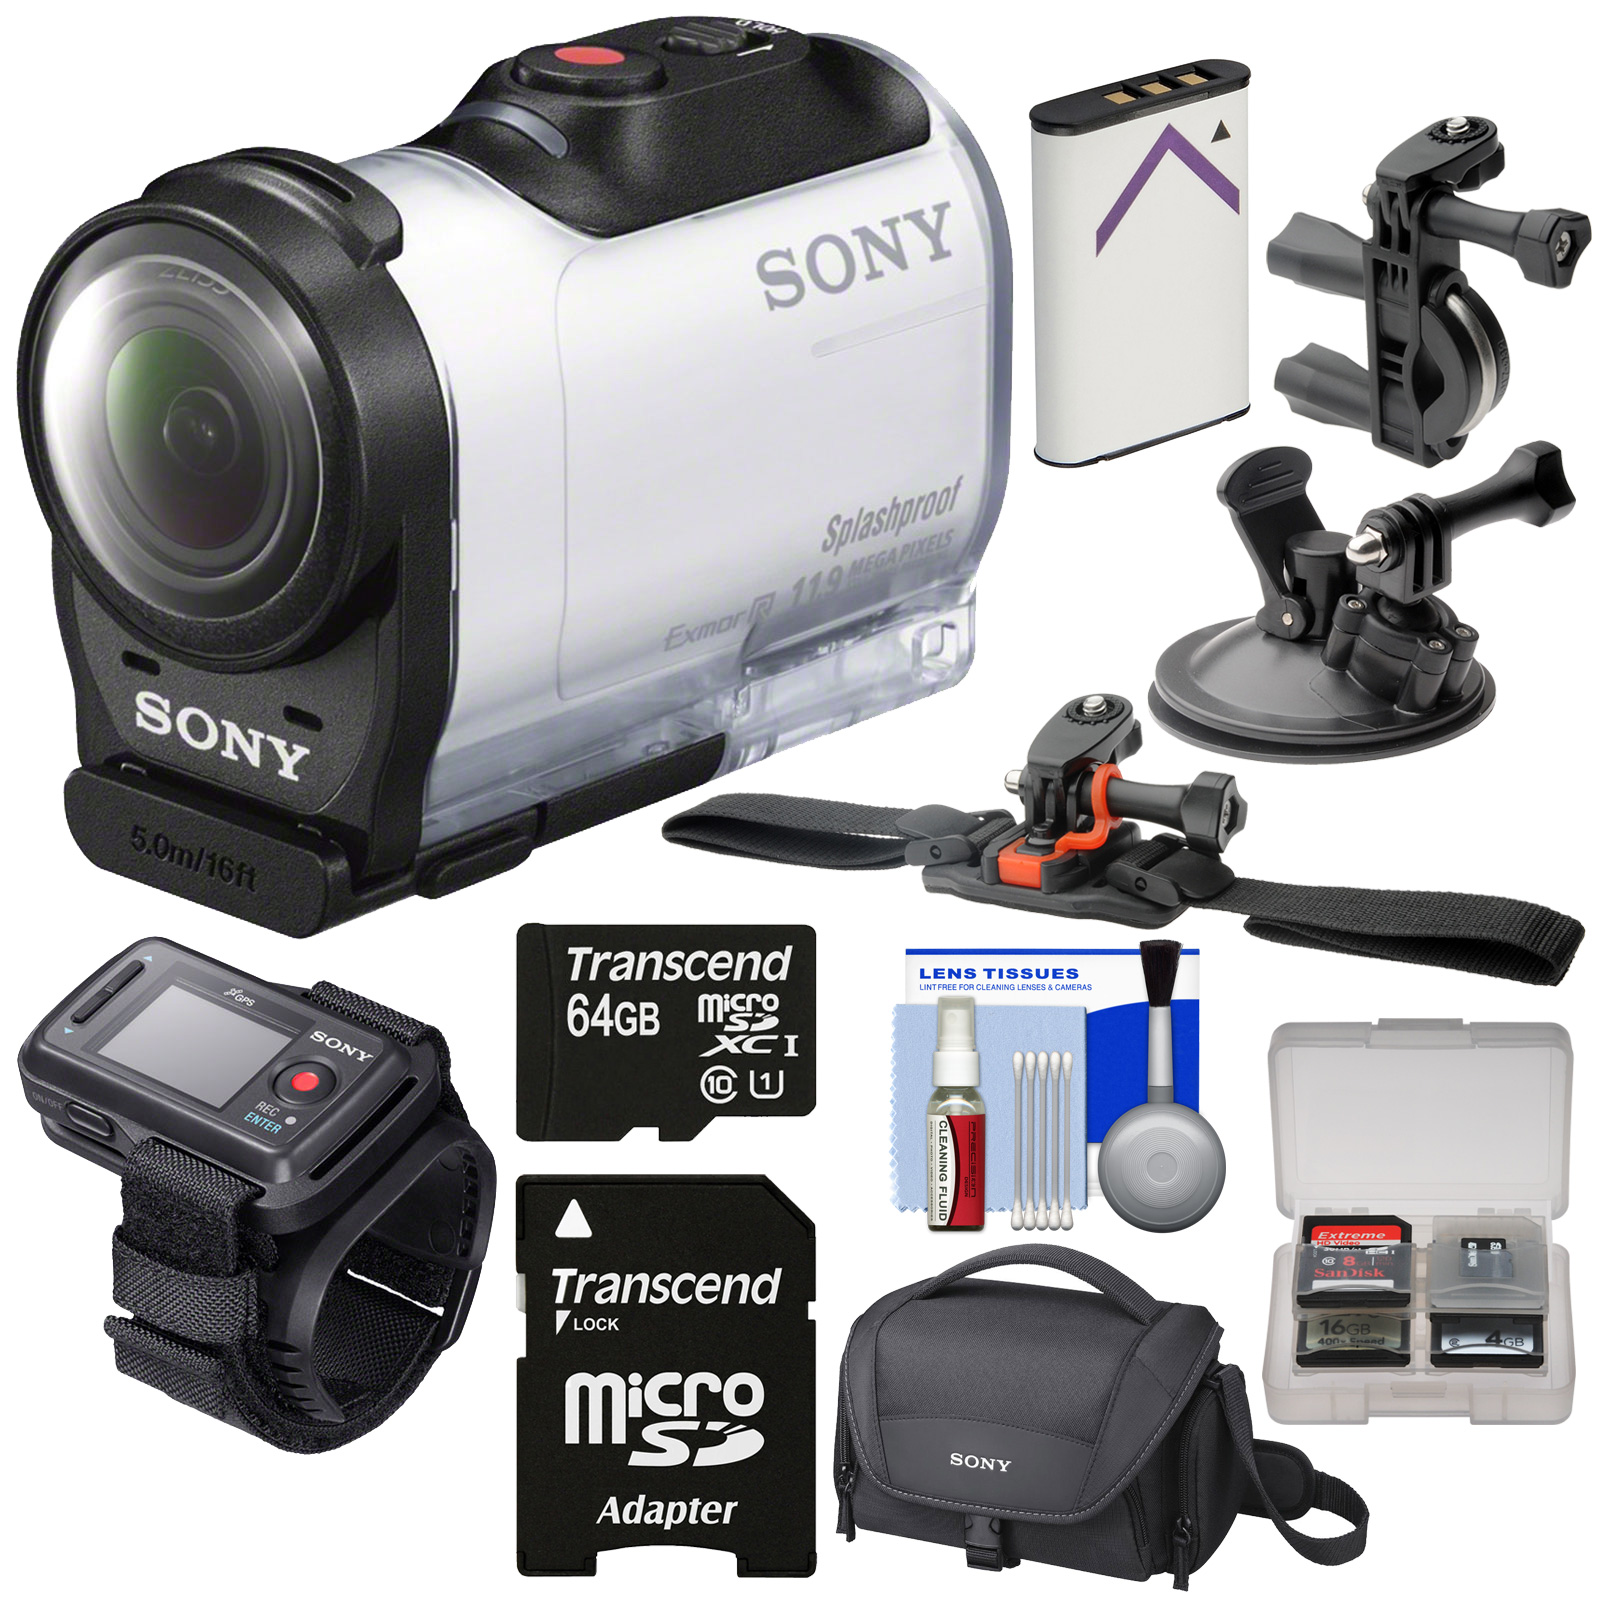 Sony Action Cam HDR-AZ1 Mini HD Video Camera Camcorder & Live View Remote with 64GB Card   Battery   Suction Cup, Handlebar Bike & Vented Helmet Mounts   Case   Kit